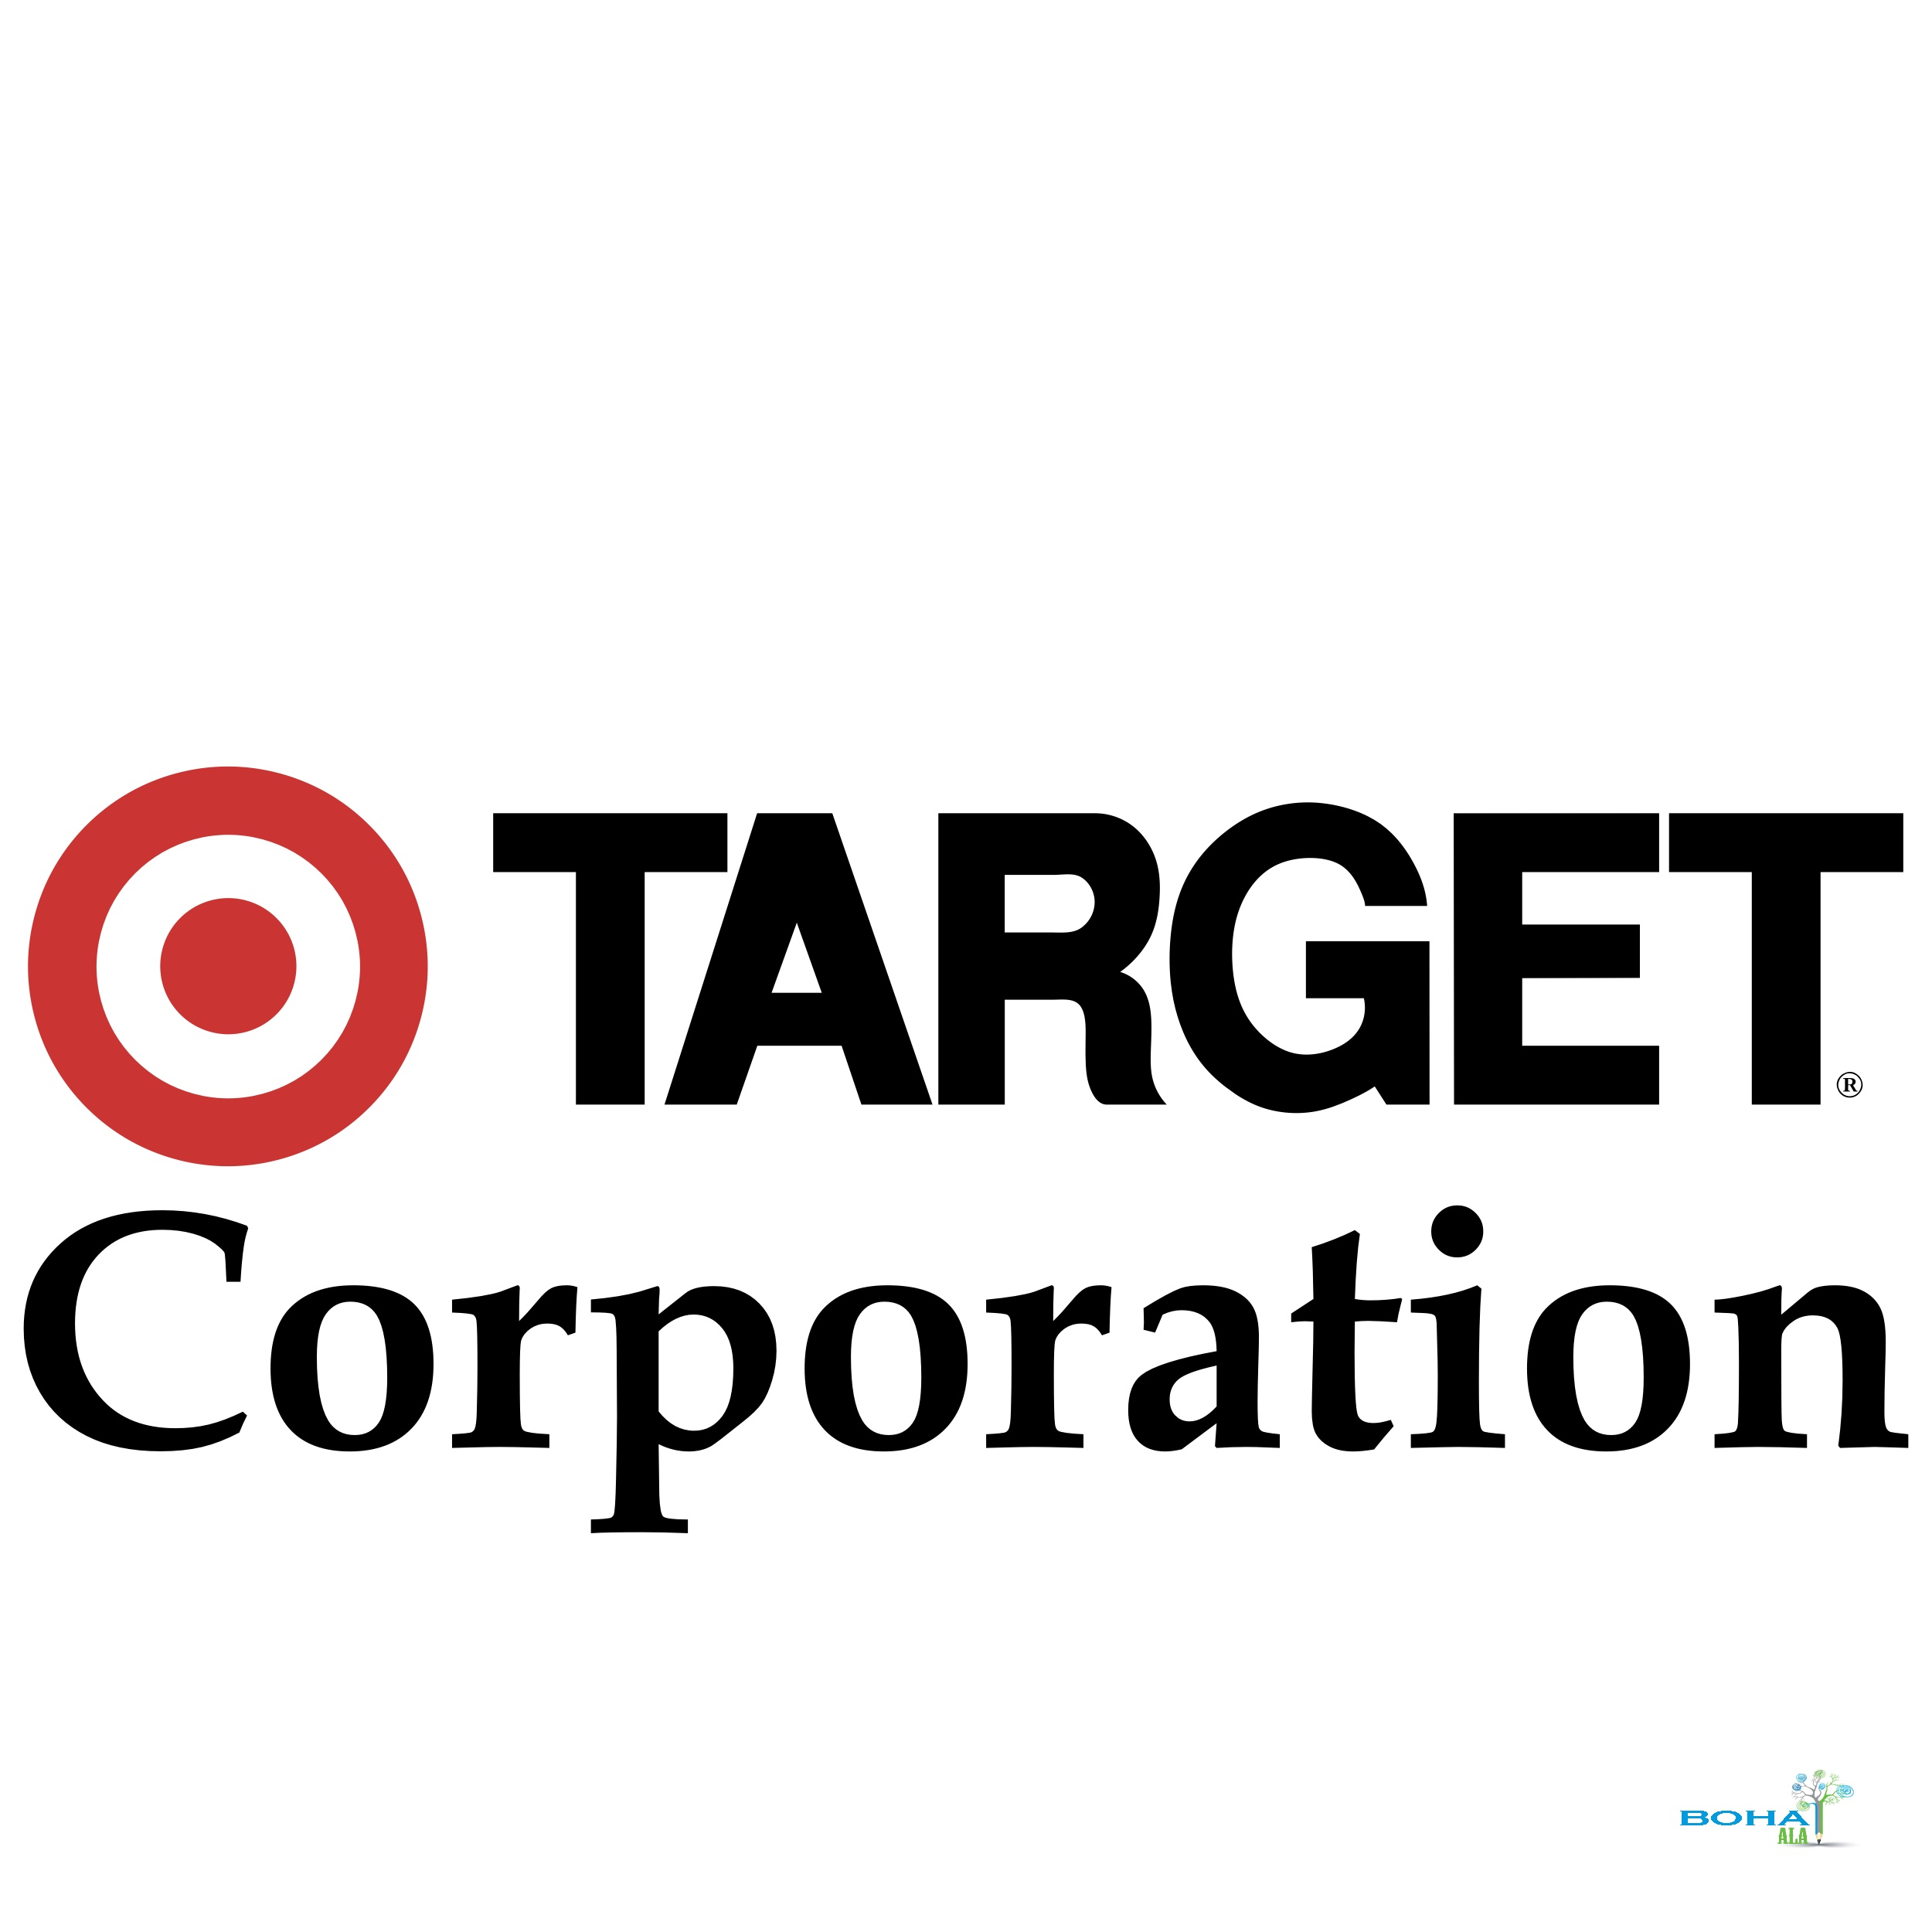 Target Corporation Organization Culture